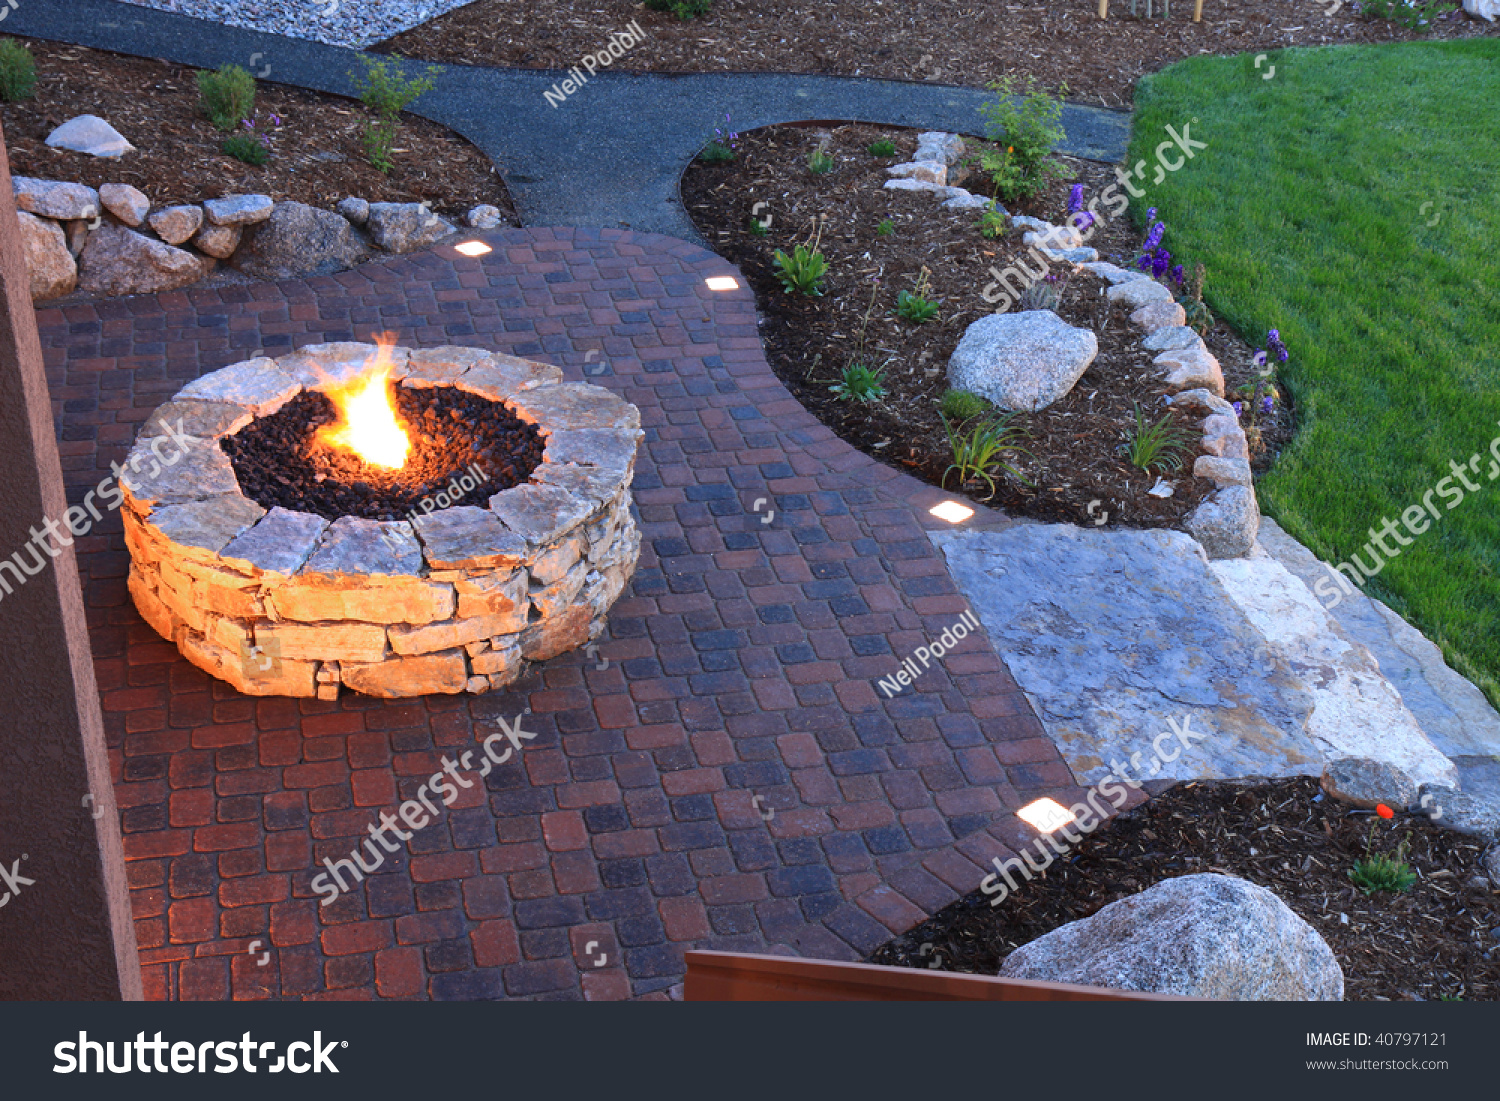 Awesome Backyard With Fire Pit And Illuminated Paver Patio ...